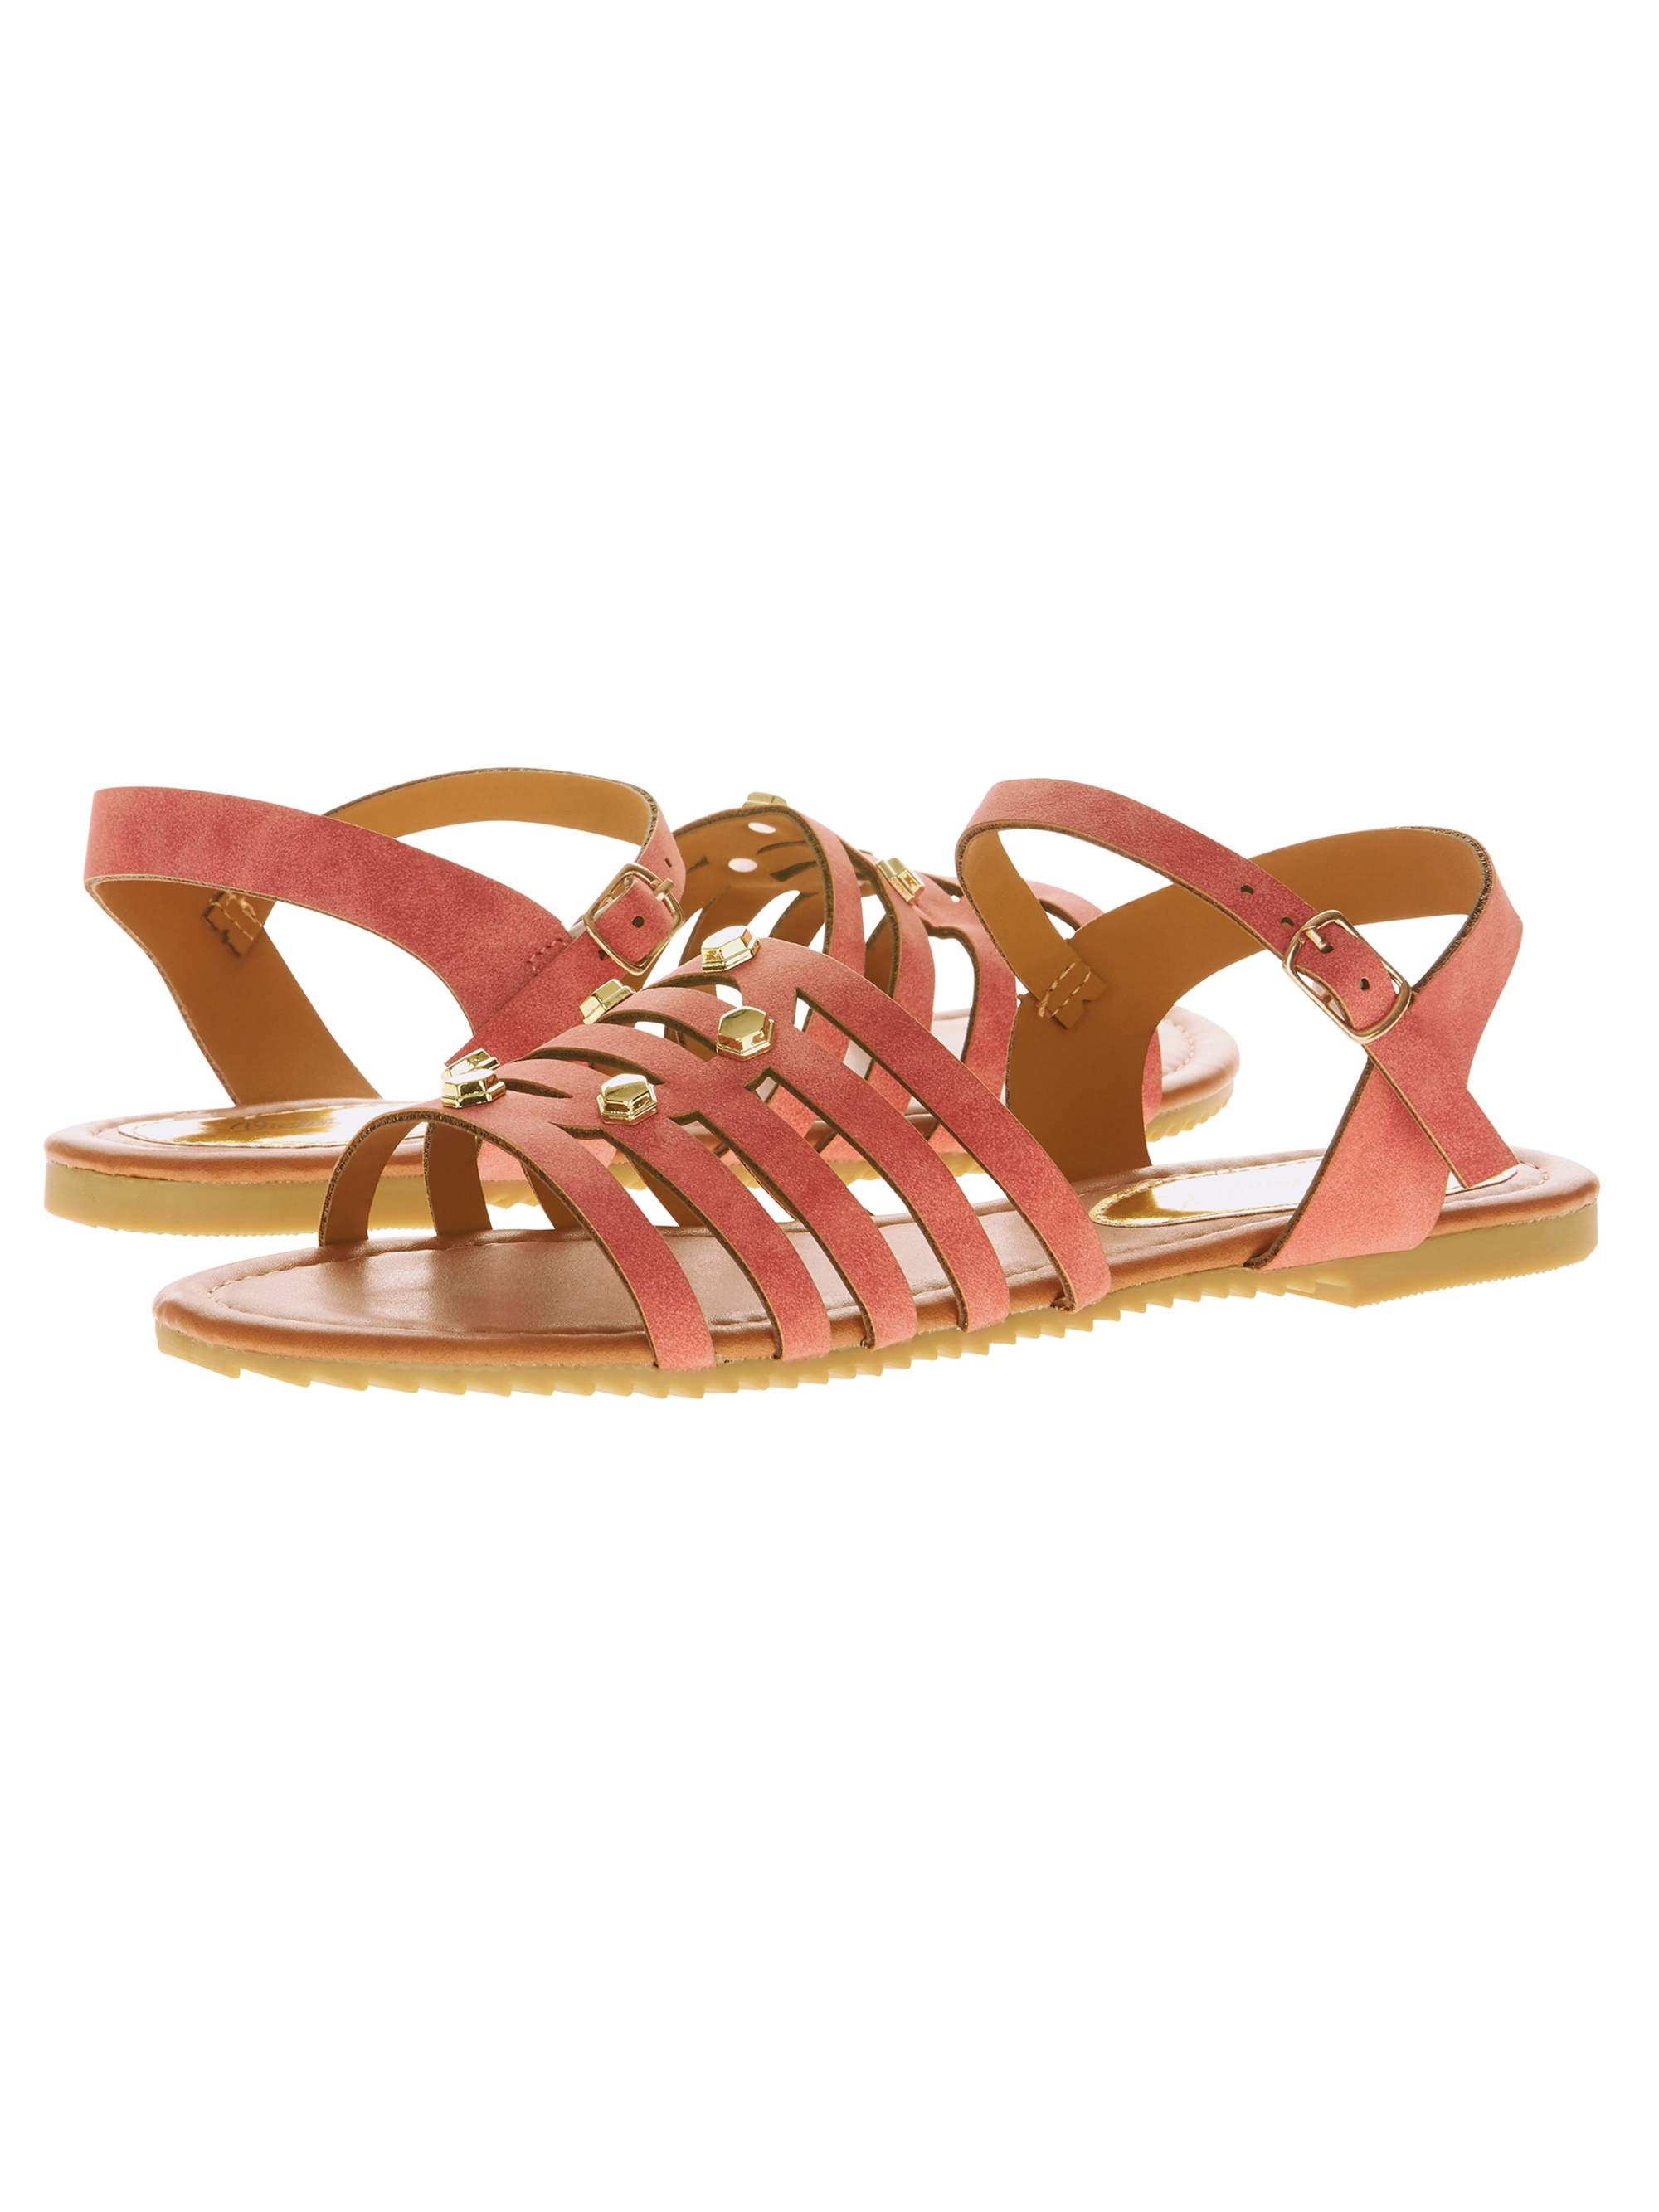 Victoria K Women's Studded Cross Over Sandals